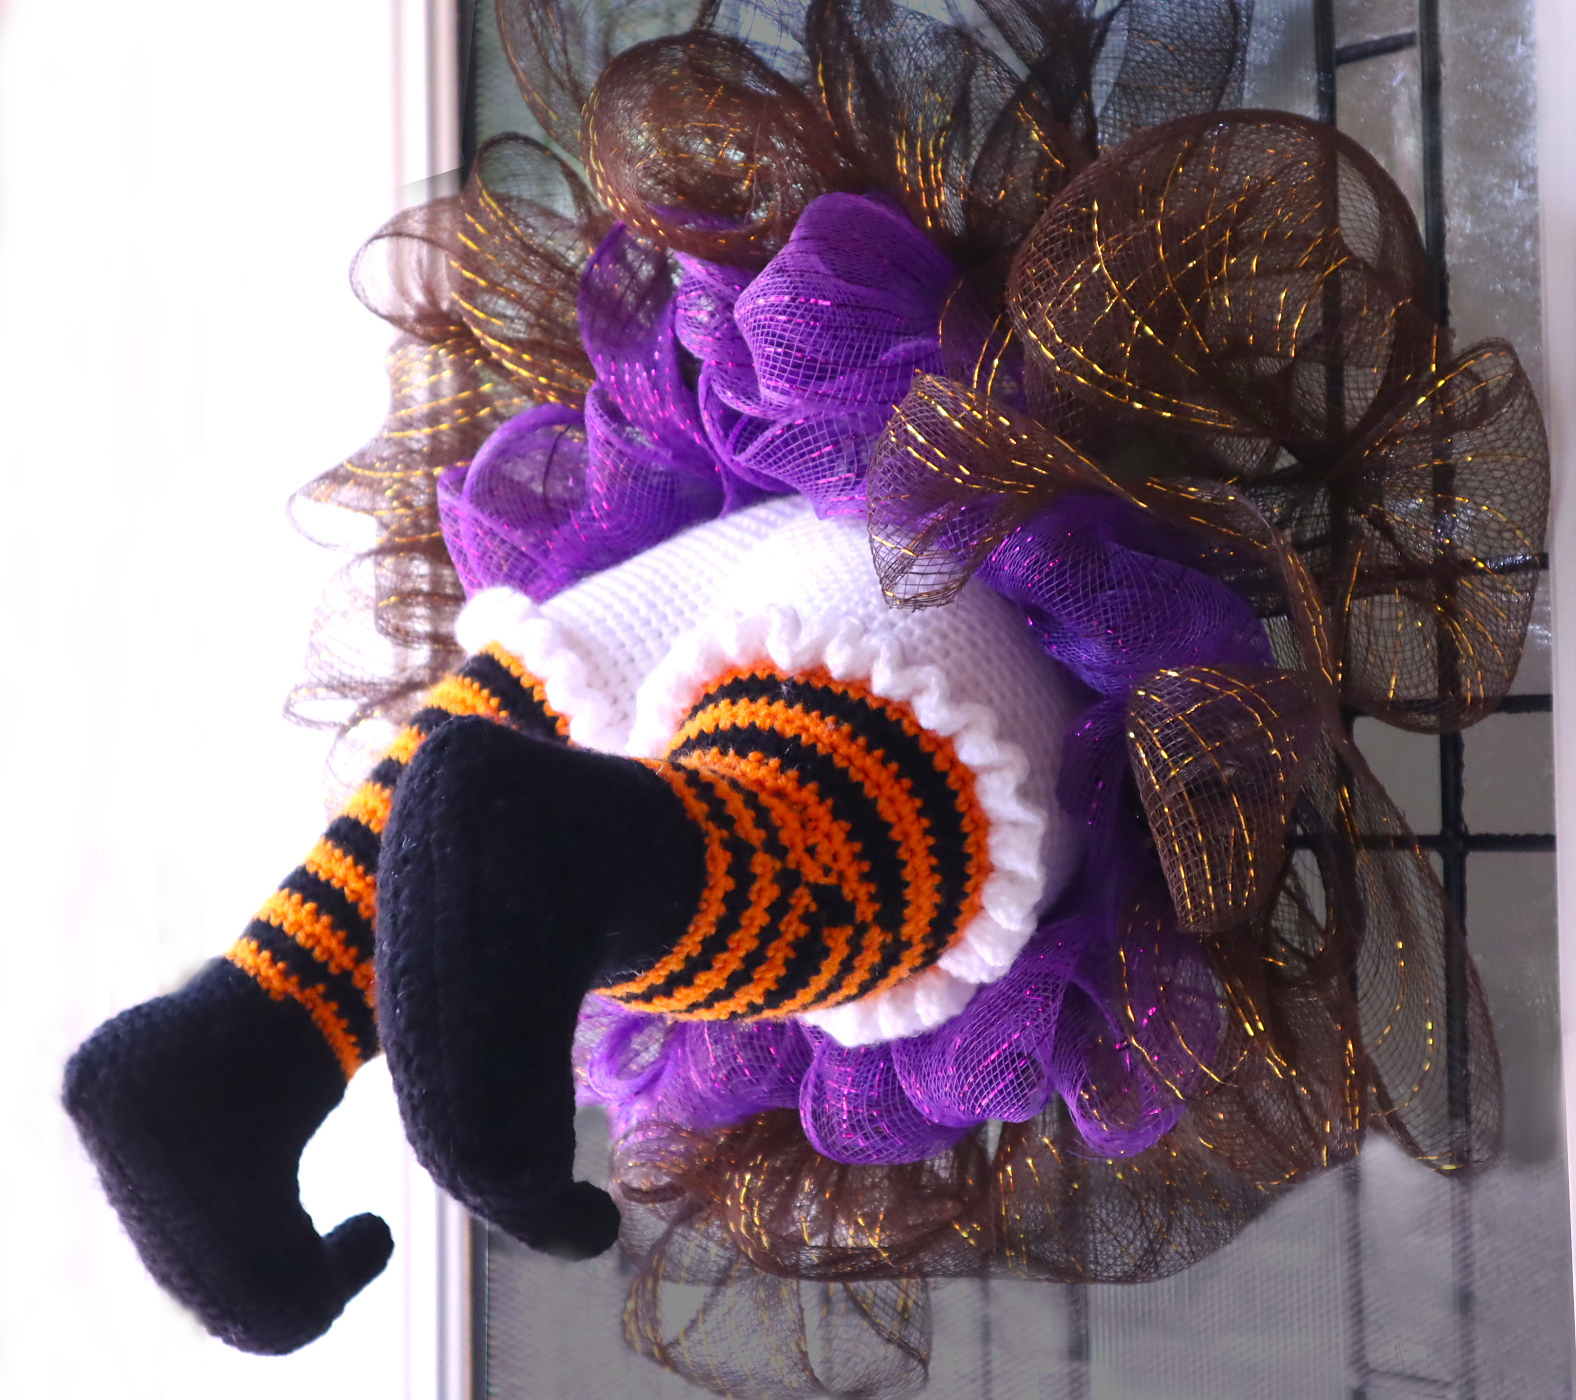 Crochet Halloween Wreath Free Pattern - There's a Witch Stuck in My Wreath!